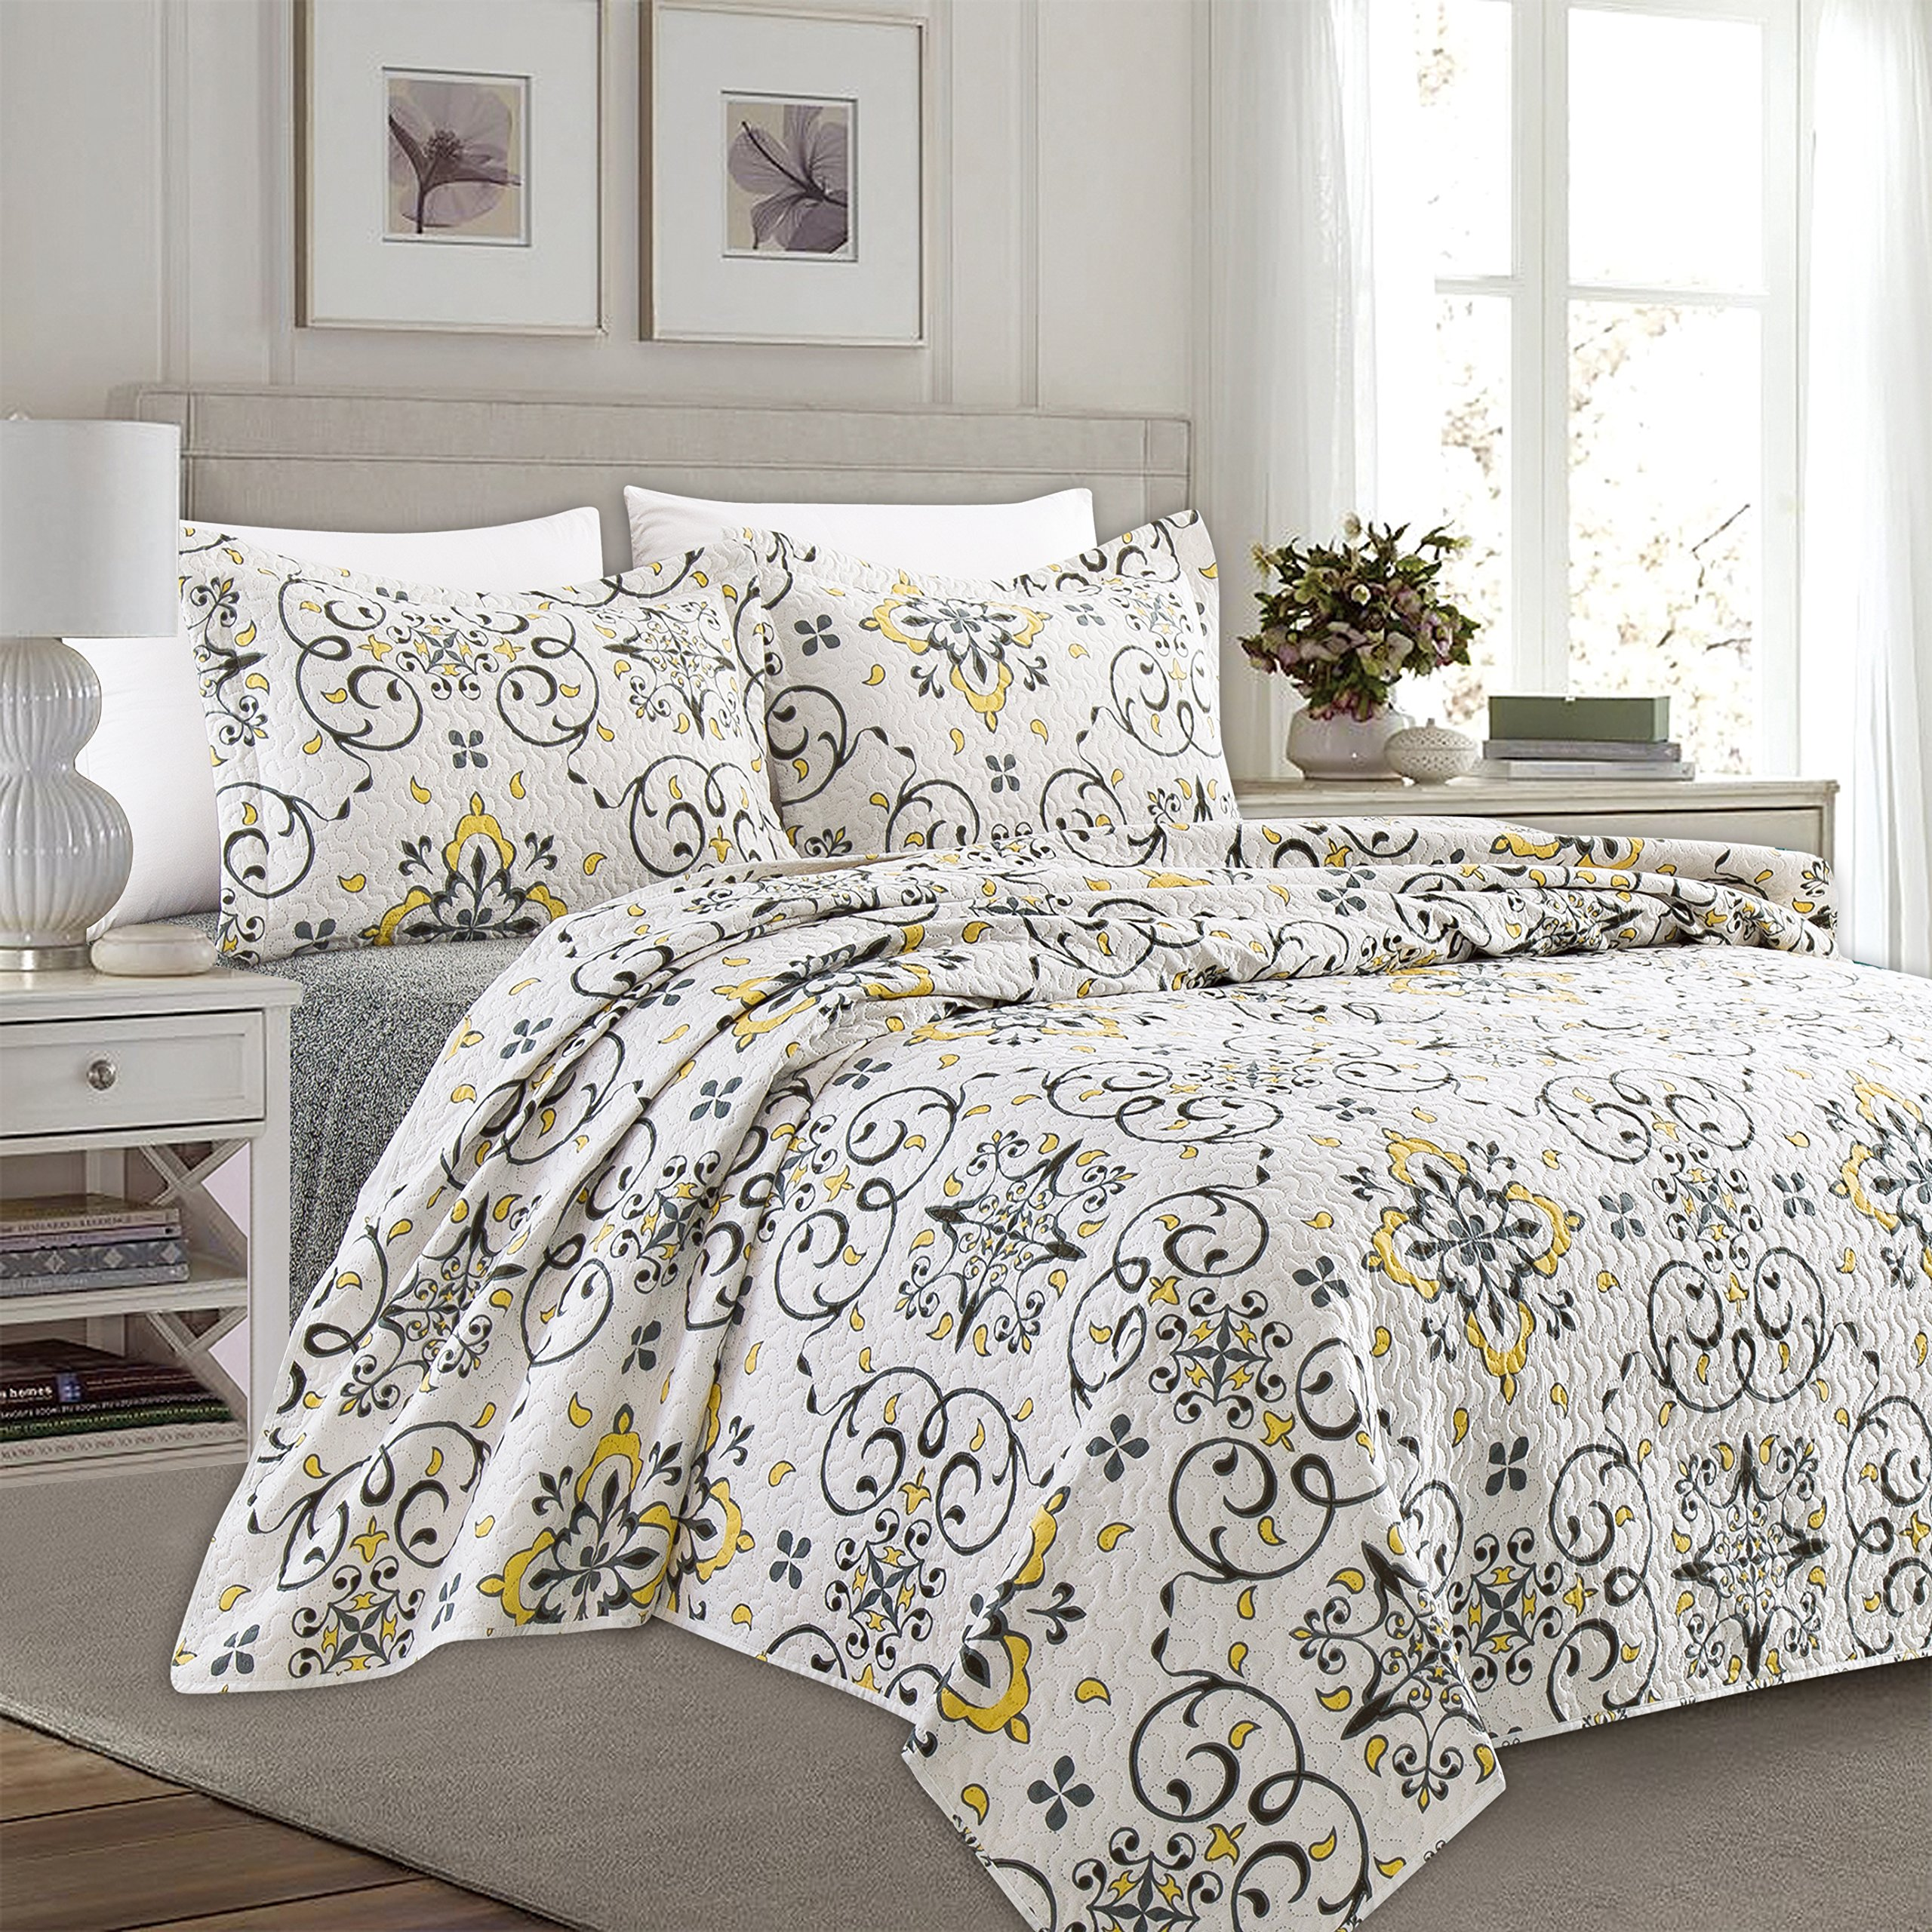 Home Fashion Designs 3-Piece Reversible Quilt Set with Shams. All-Season Bedspread with Floral Printed Pattern in Bright Colors. Collette Collection By Brand. (Twin, Multi)